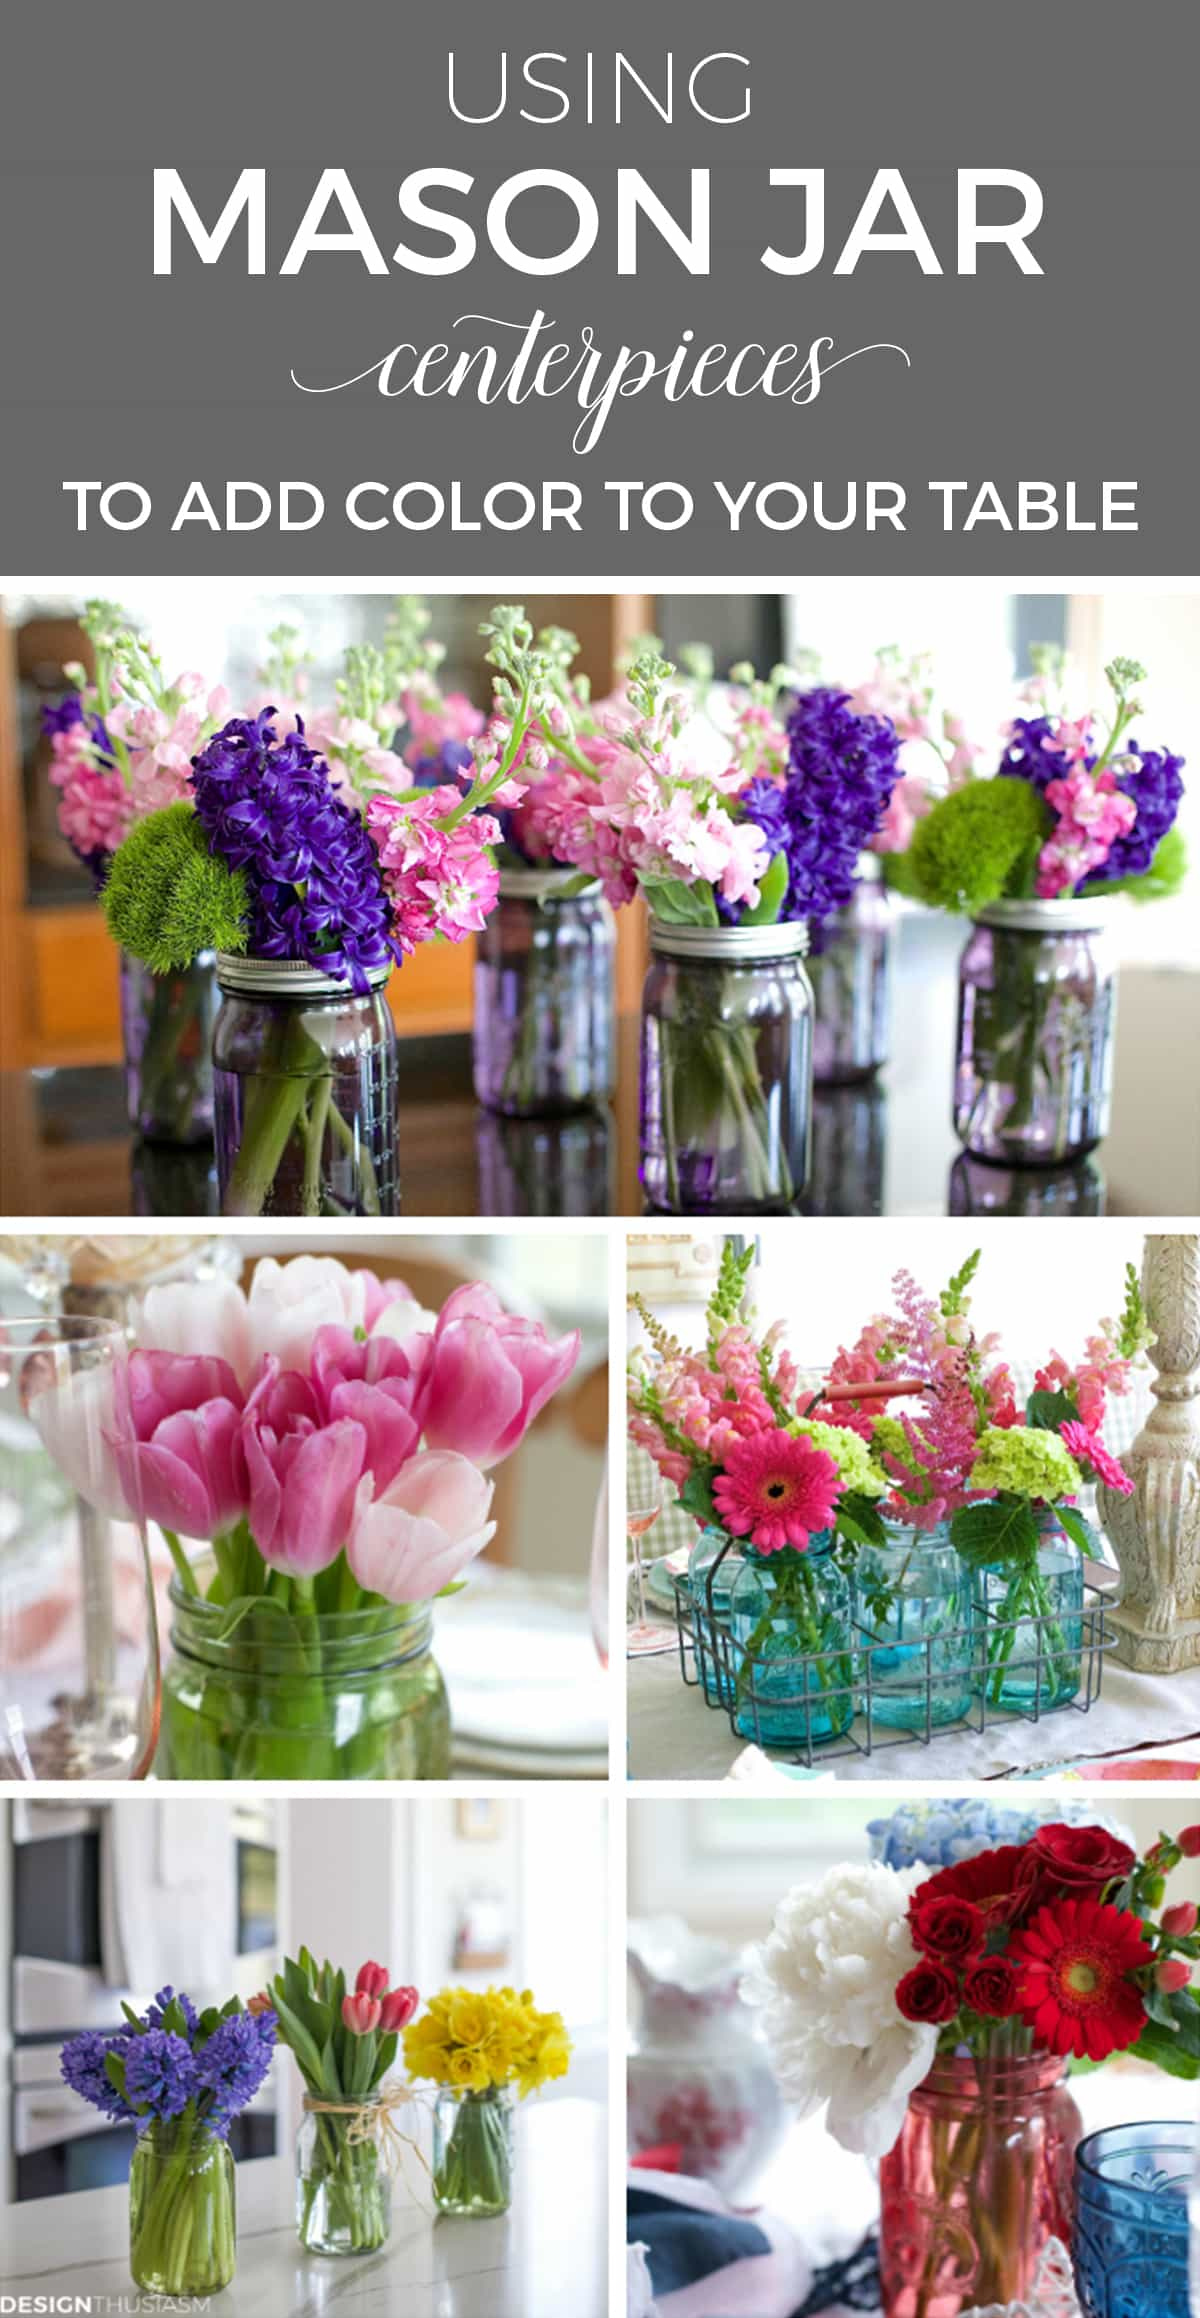 Using Mason Jar Centerpieces to Add Color to Your Table Settings